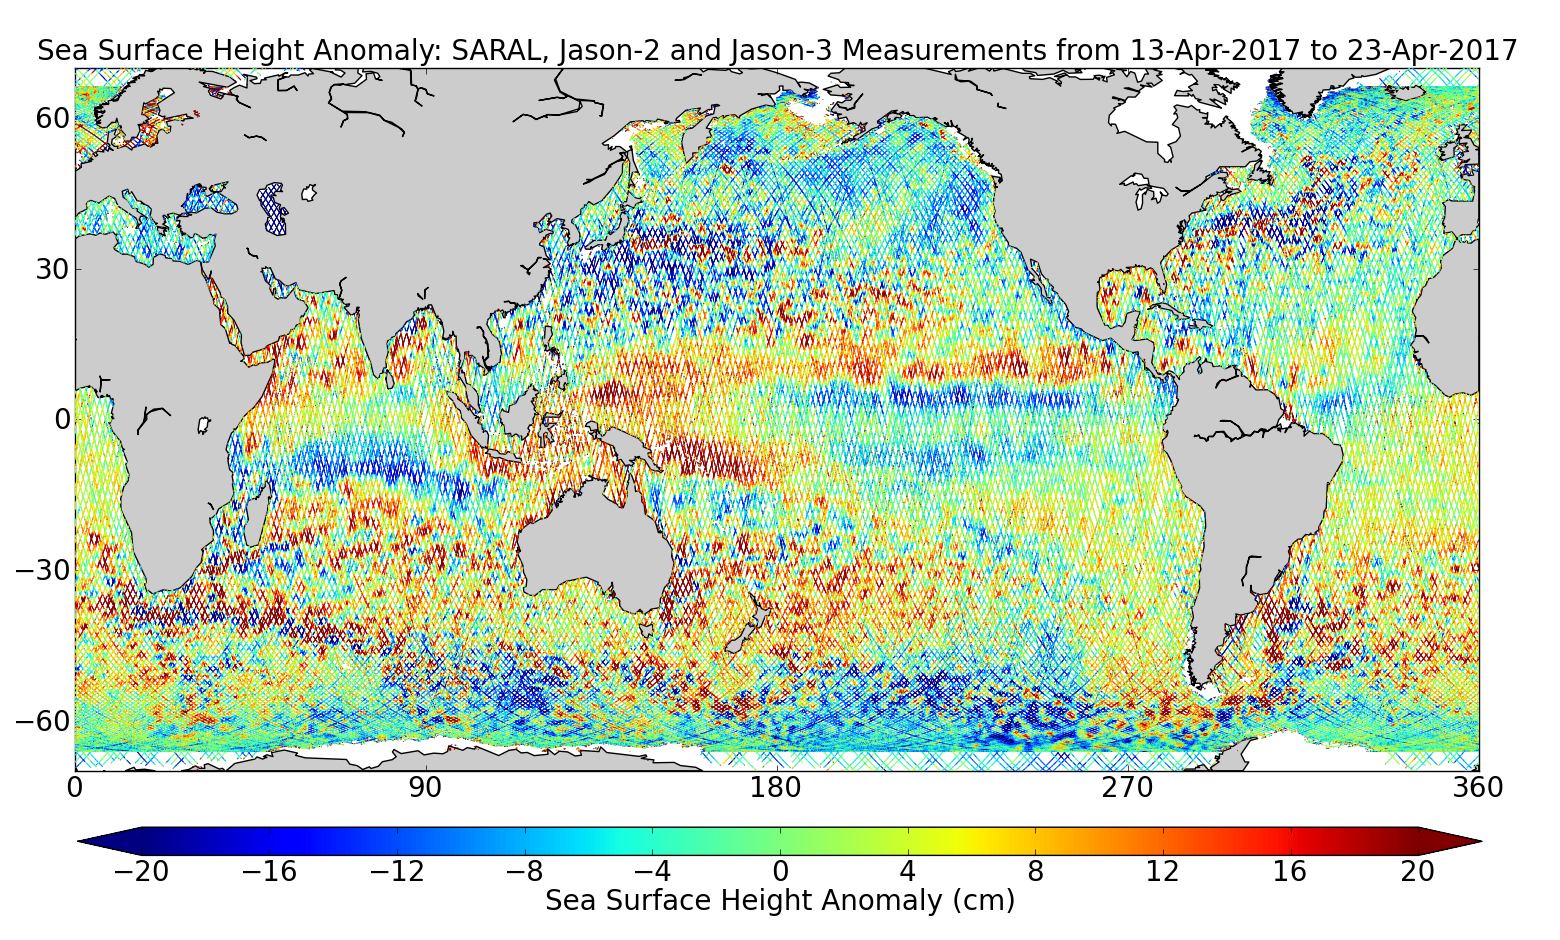 Sea Surface Height Anomaly: SARAL, Jason-2 and Jason-3 Measurements from 13-Apr-2017 to 23-Apr-2017